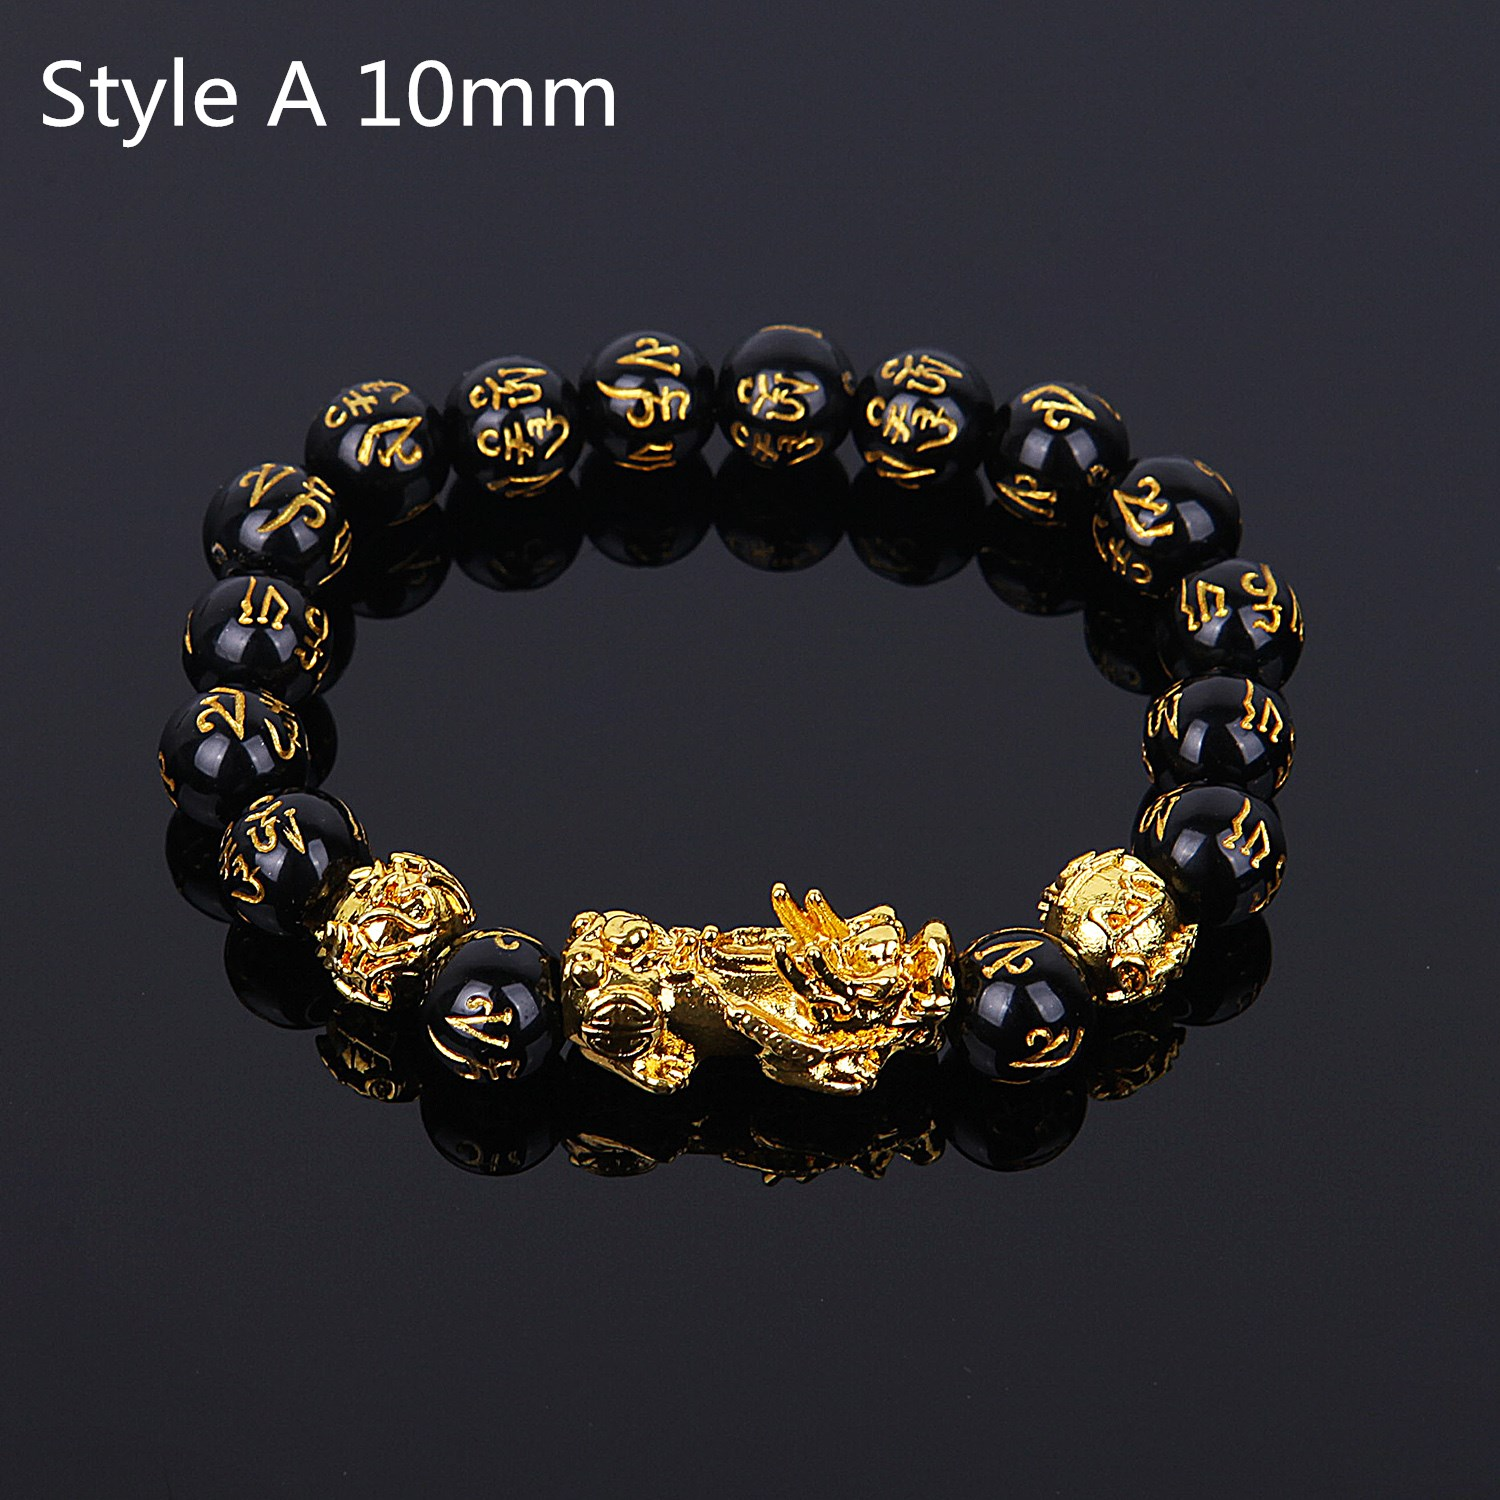 Style A10mm